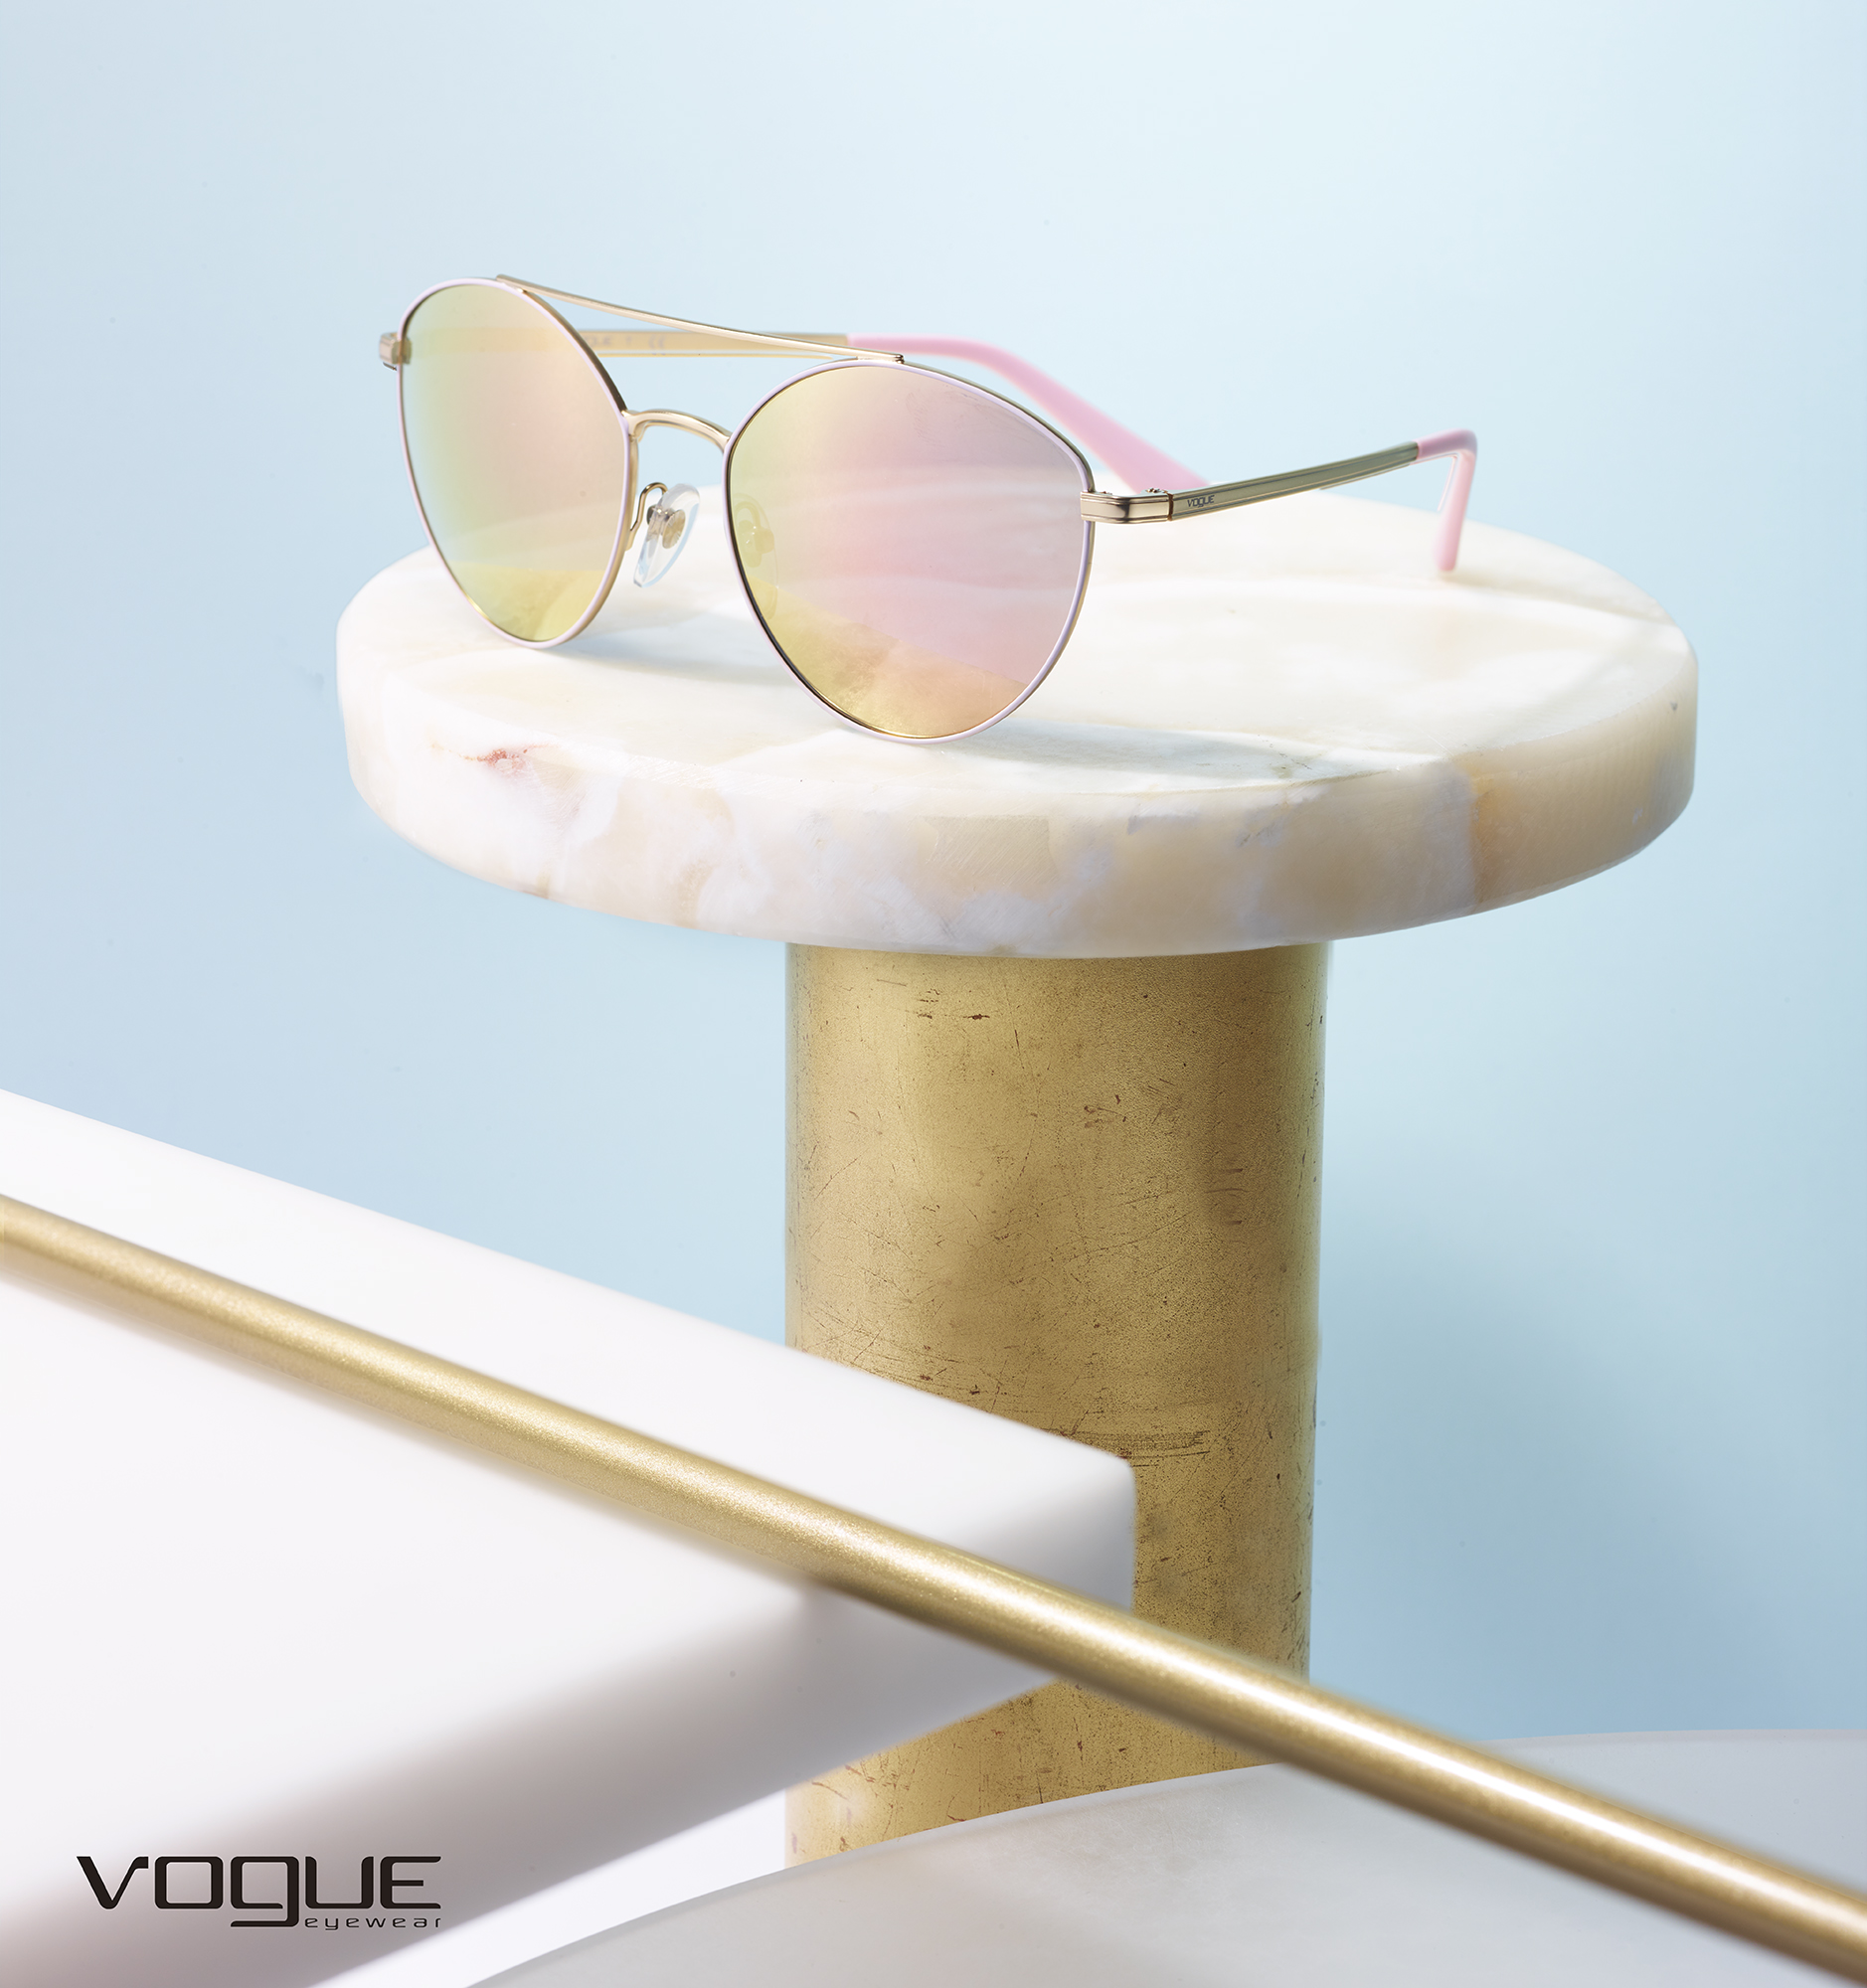 2016_NOV_7_VOGUE_EYEWEAR_REFINERY29_ShanaNovak_COMP2